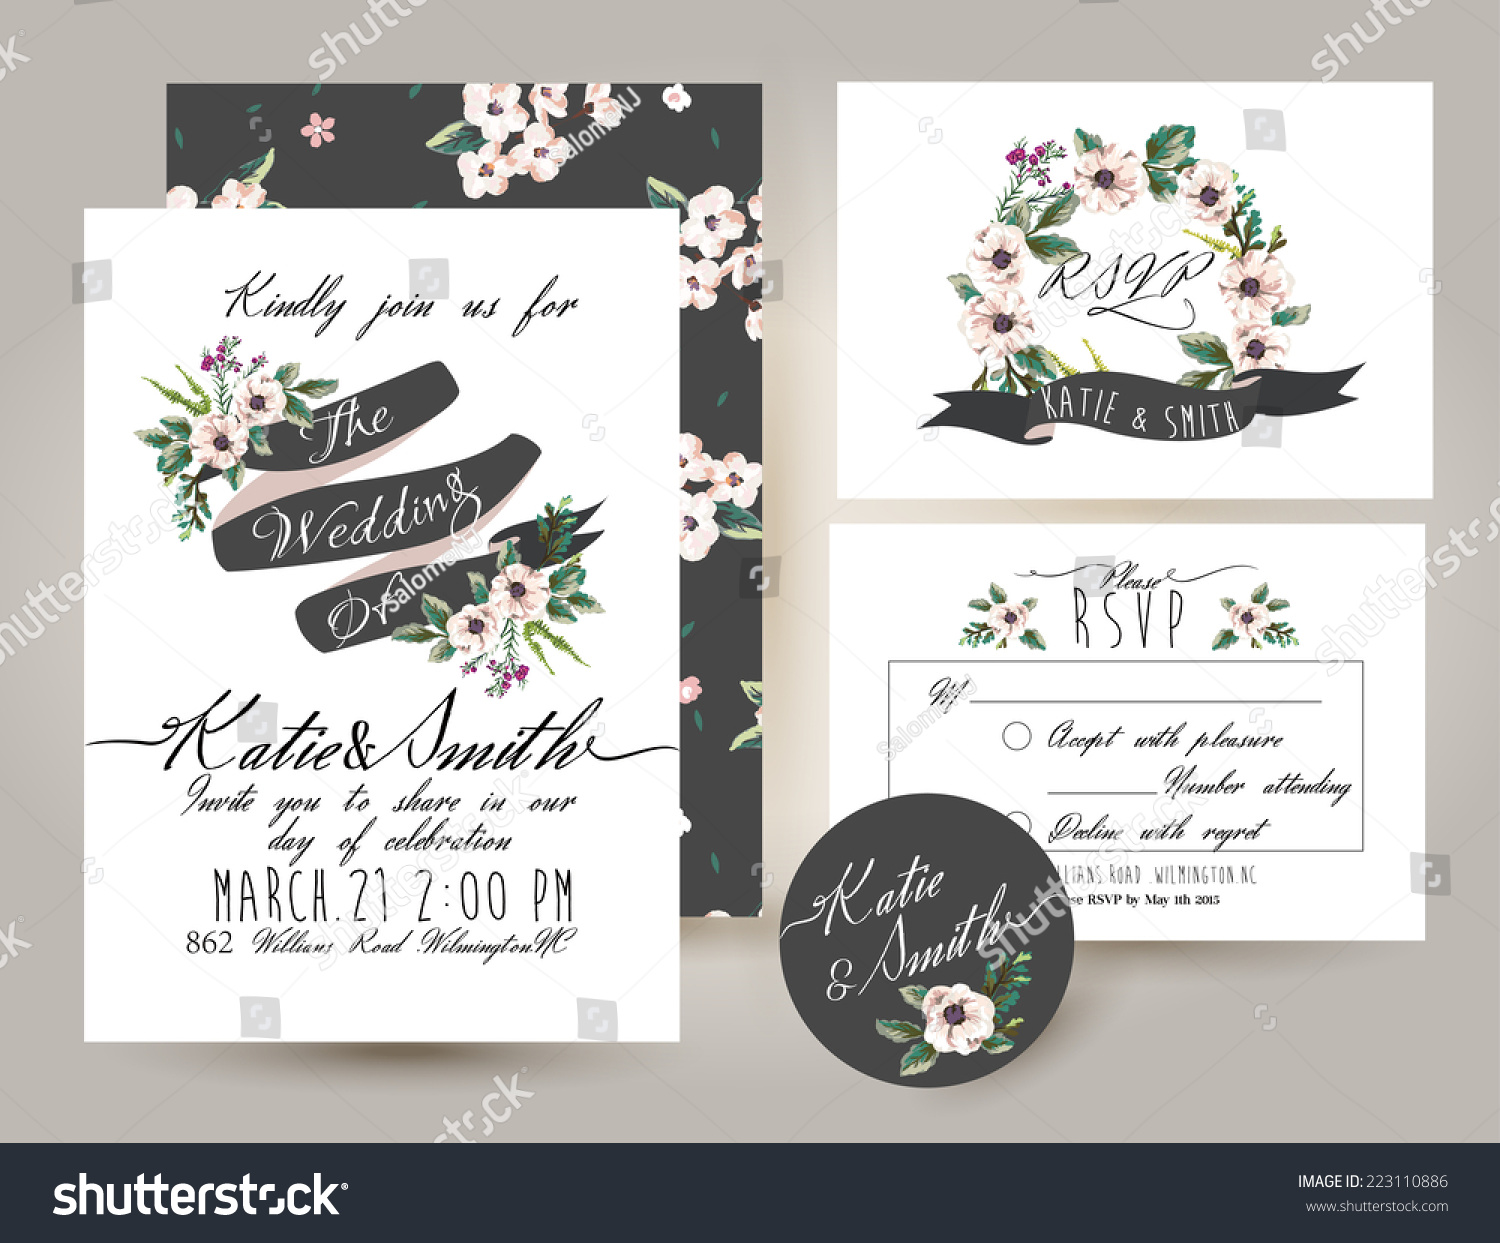 Wedding Invite Card Stock: Wedding Invitation Card Suite Romantic Flower Stock Vector